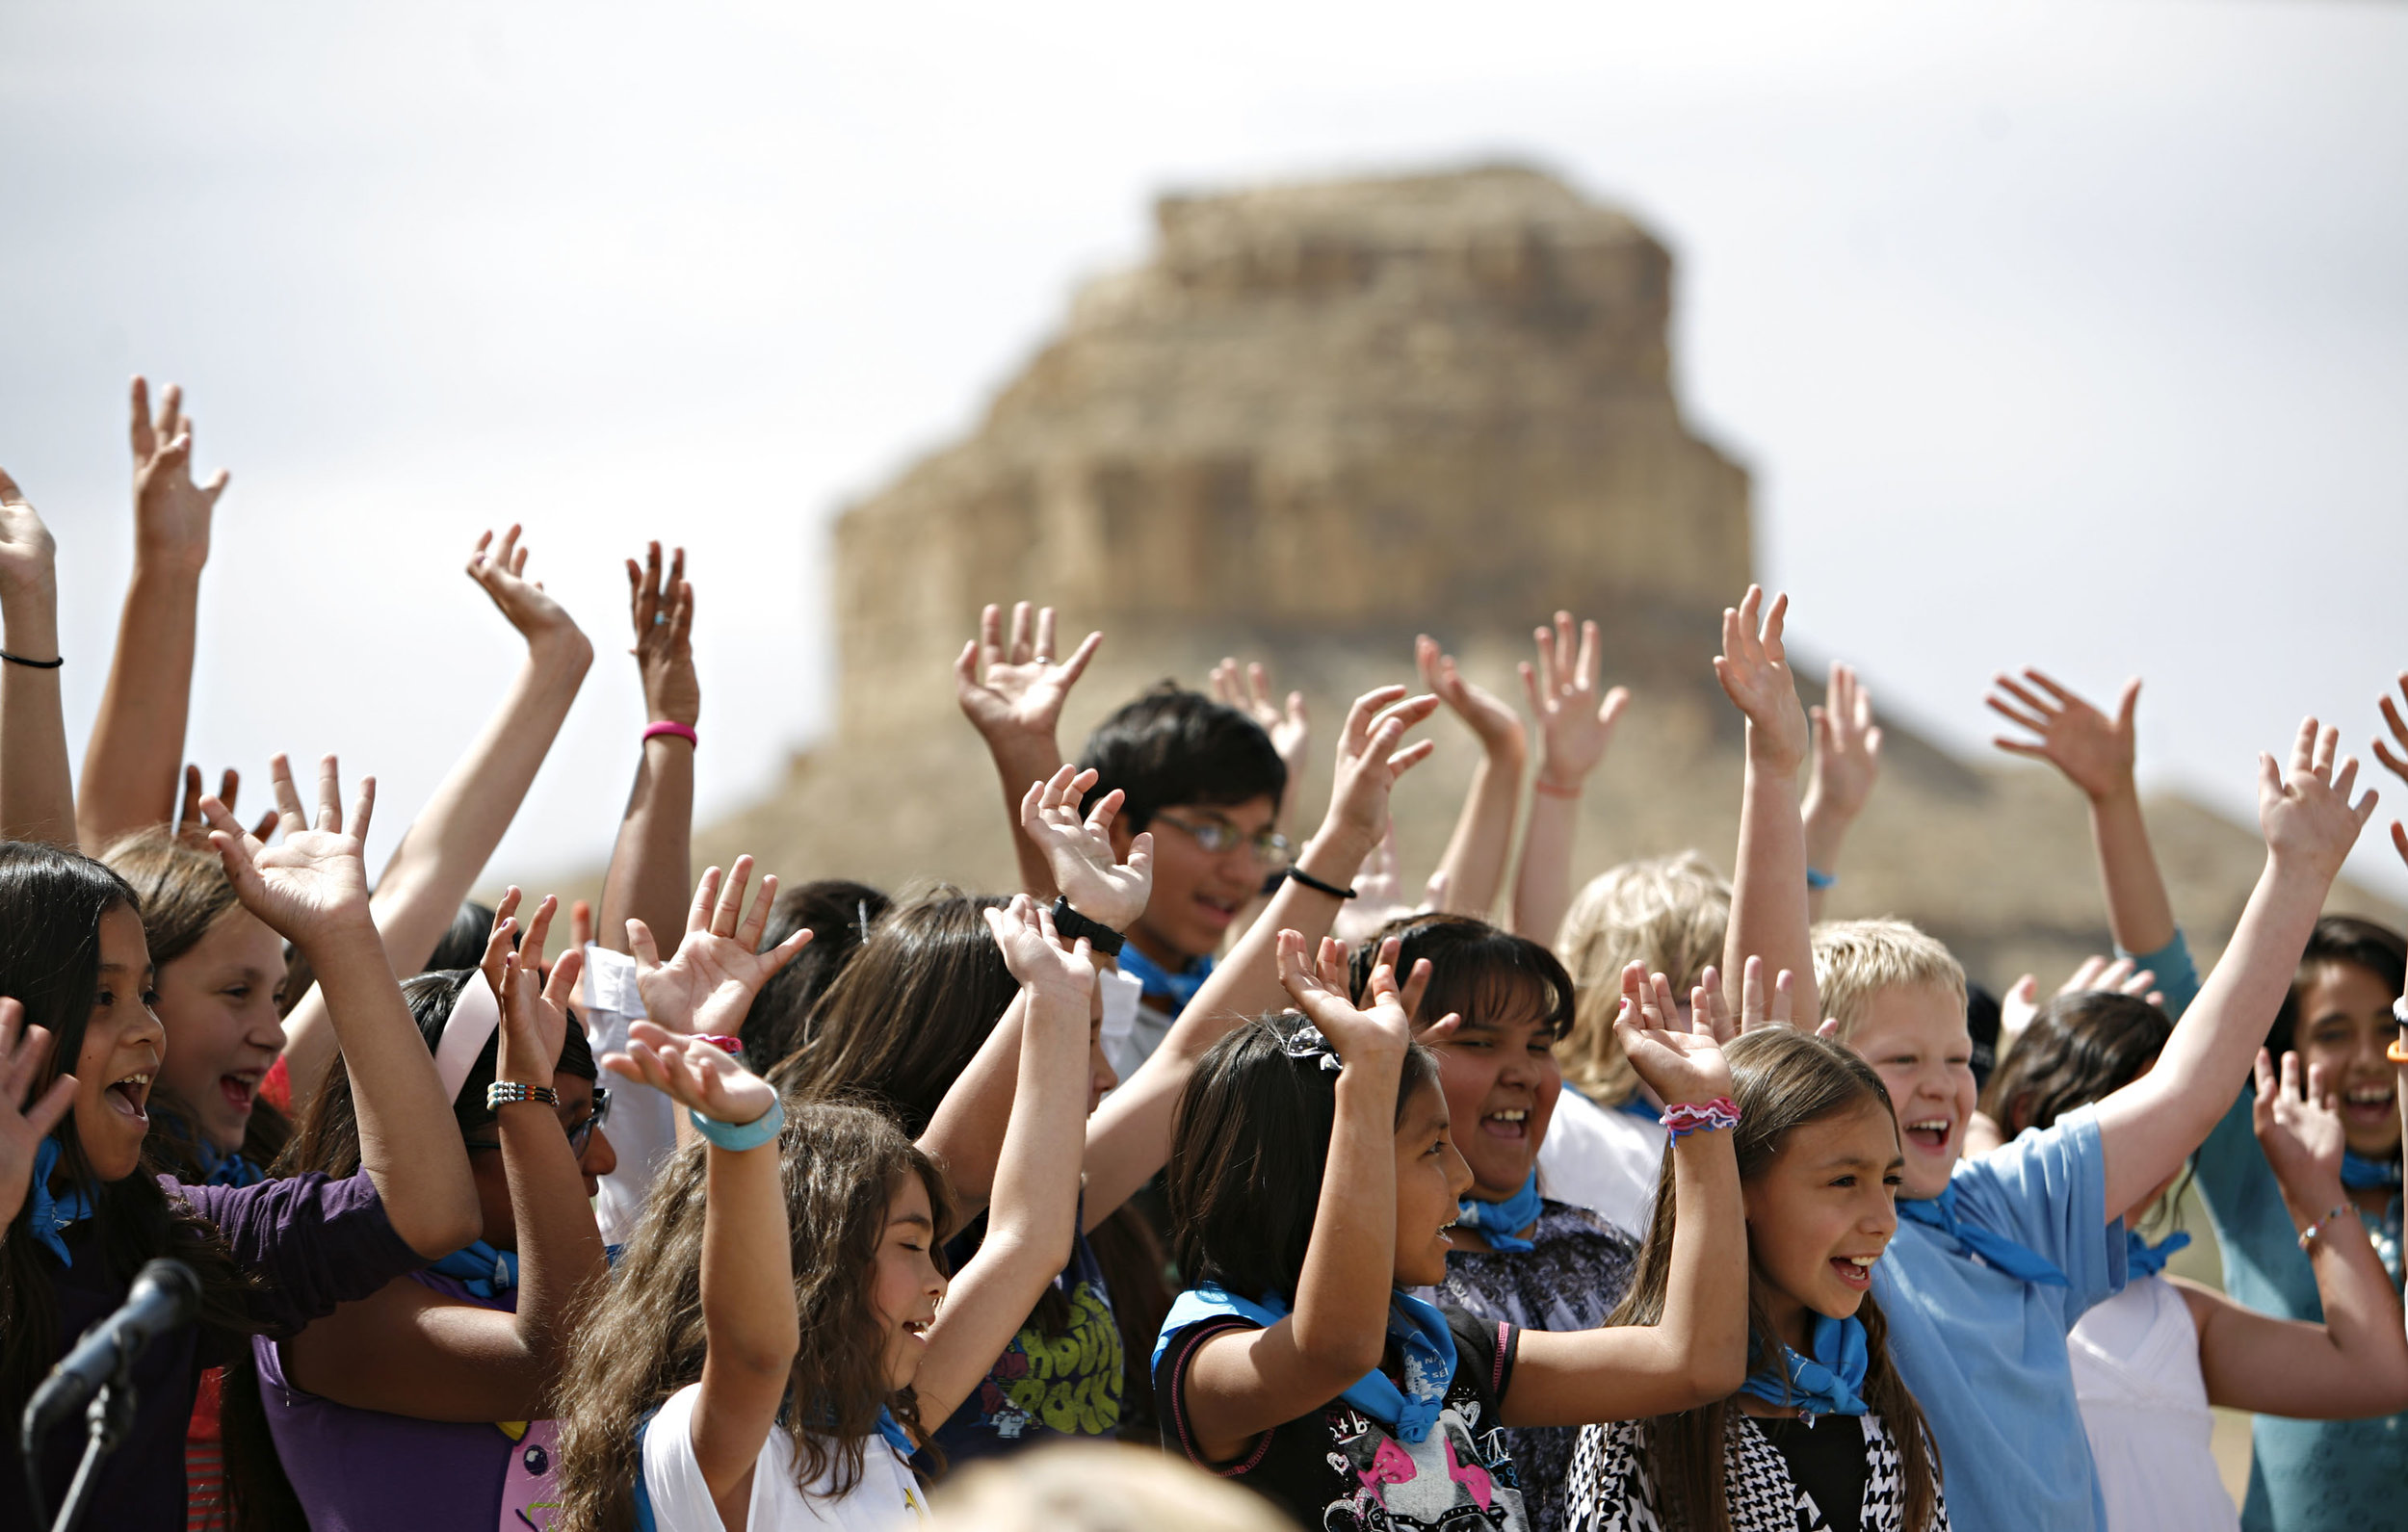 The Apache Elementary Honor Choir performs in front of Fajada Butte during the Quarter launch at Chaco Canyon, Thursday, April 26, 2012. (Morgan Petroski/Albuquerque Journal)